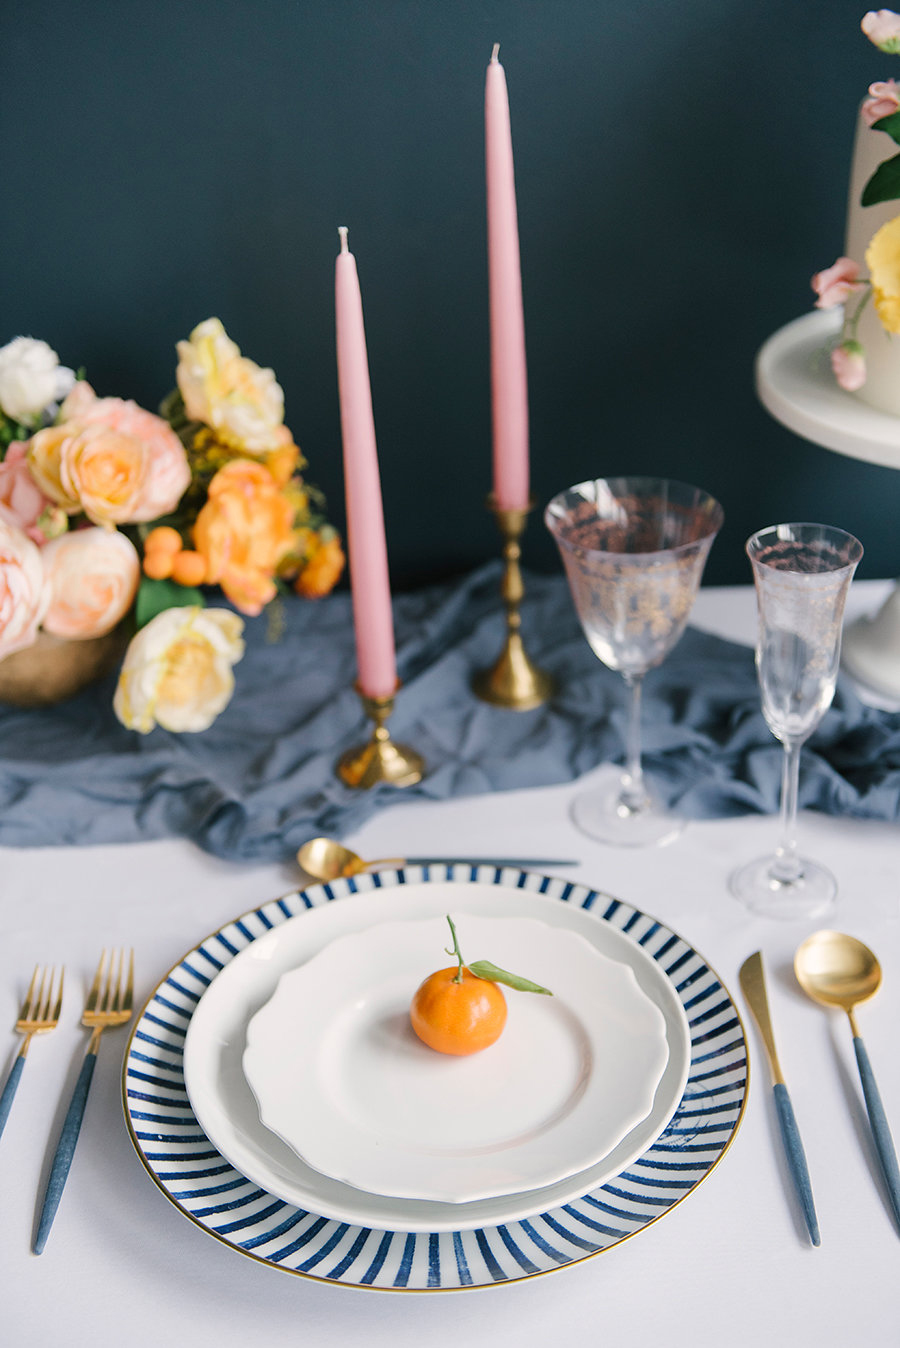 blue and orange weddings - photo by Ashlee Brooke Photography http://ruffledblog.com/summertime-citrus-wedding-inspiration